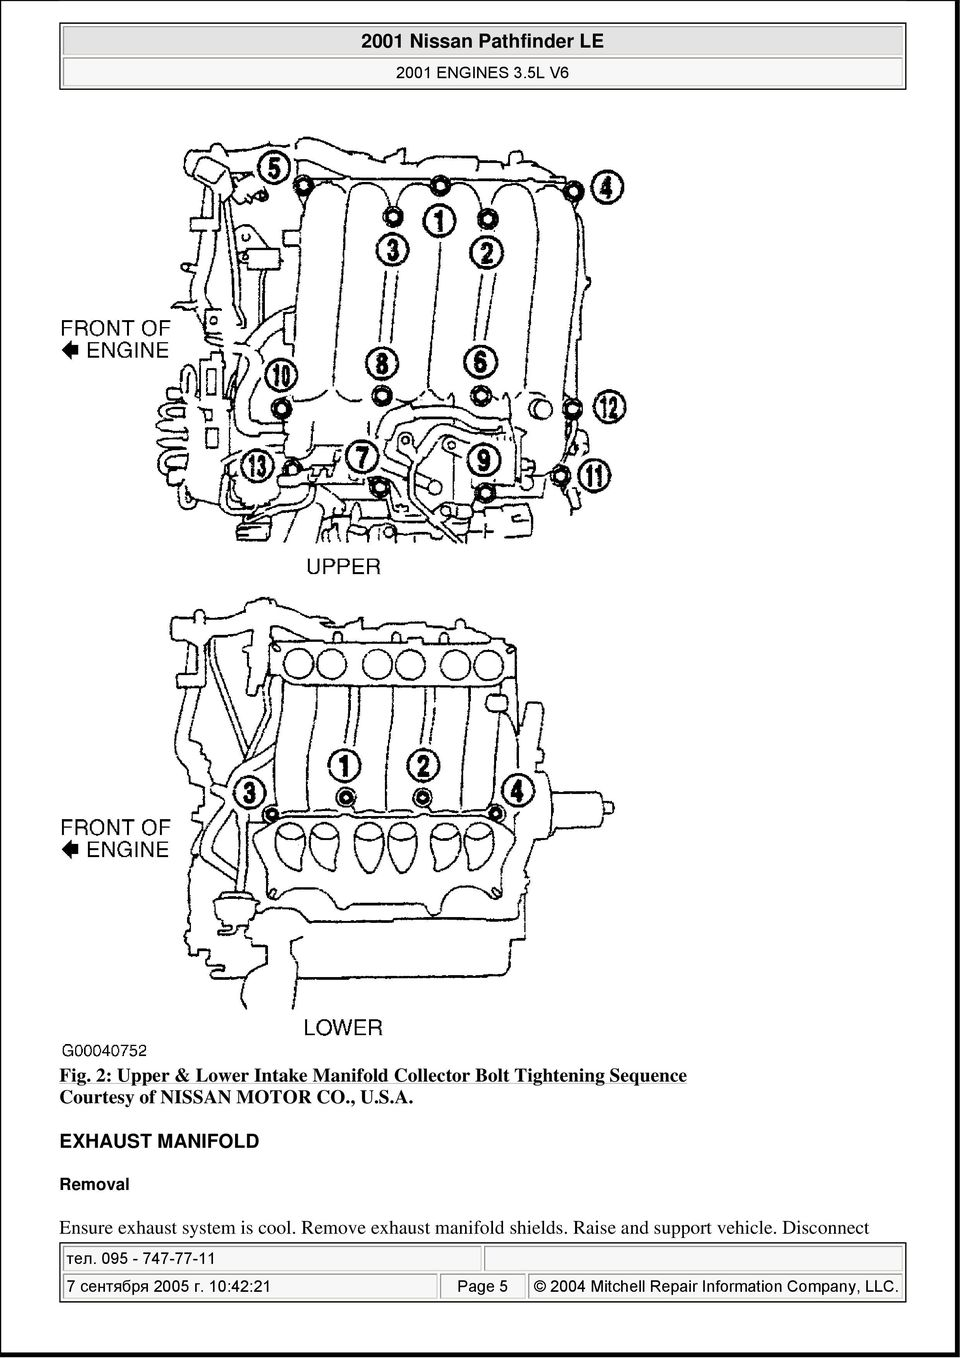 Pathfinder 3 5l Engine Diagram Another Blog About Wiring 2001 Nissan Le Engines V6 Pdf Rh Docplayer Net